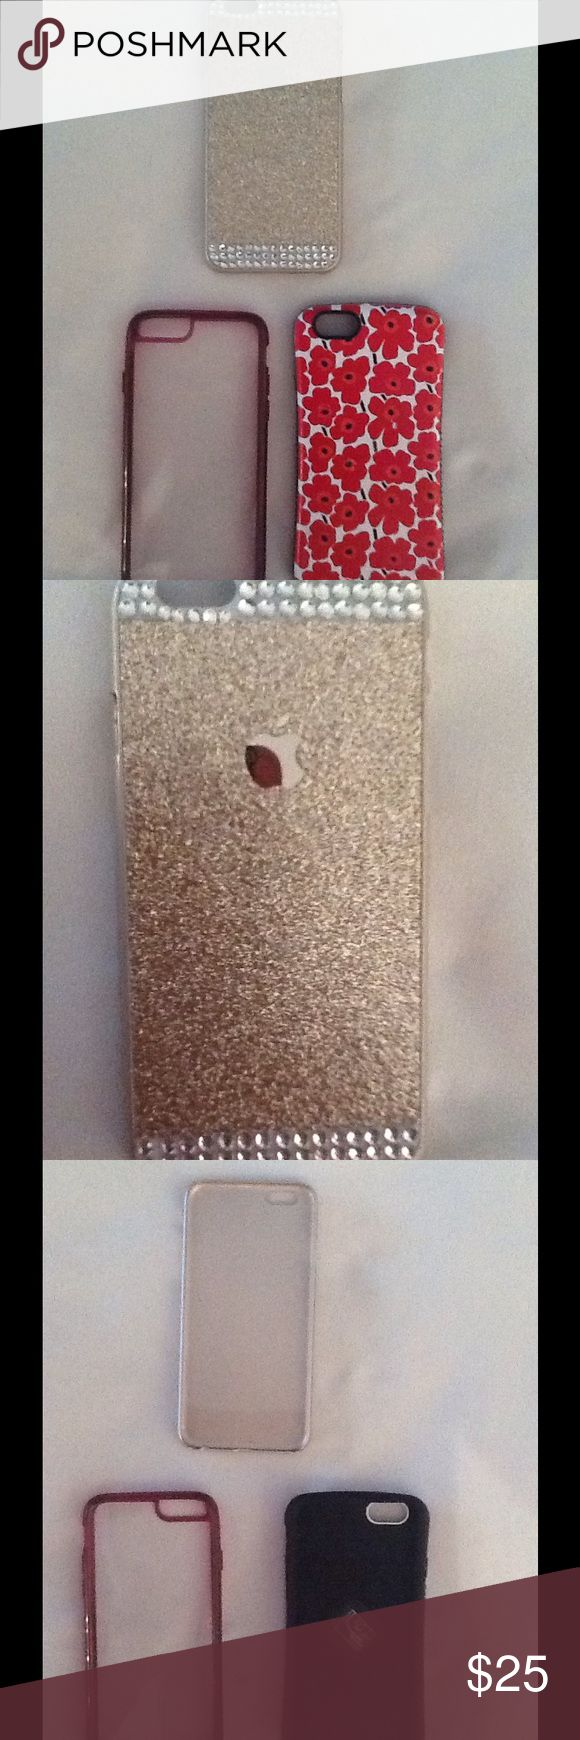 Iphone6 set of three phone cases. Each are one piece slip on style.  The flowery one is impact resistant, similar to Otterbox but less bulky.   The gold glittery one has never been used and is gorgeous.  The clear one was used the most but is still in good shape. Accessories Phone Cases